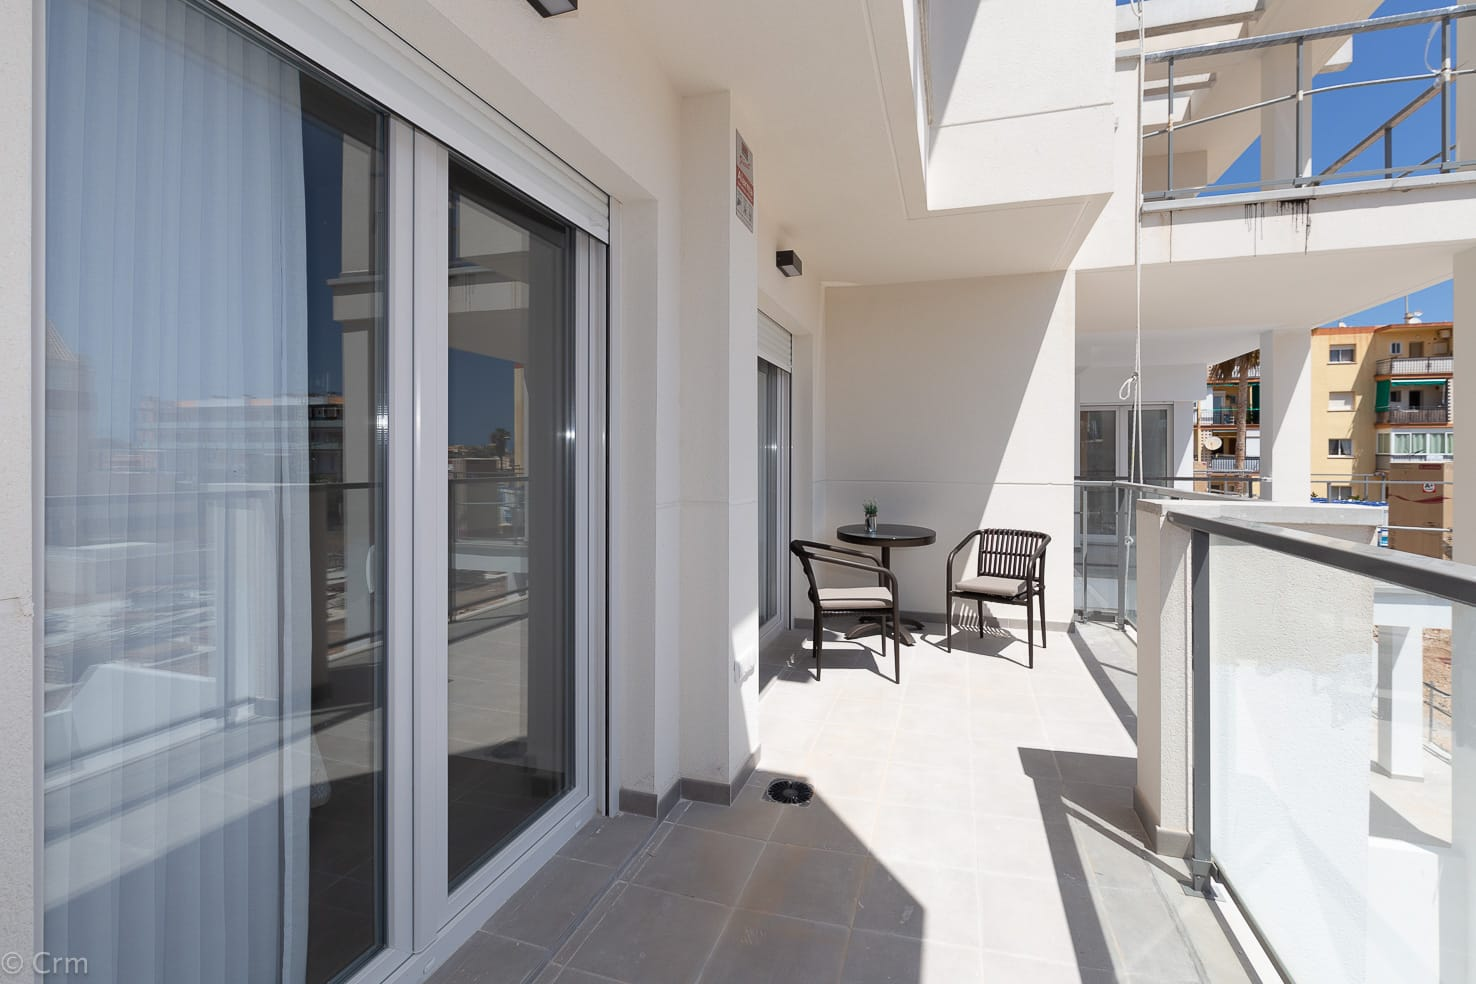 2 bedroom apartment For Sale in Denia - photograph 9